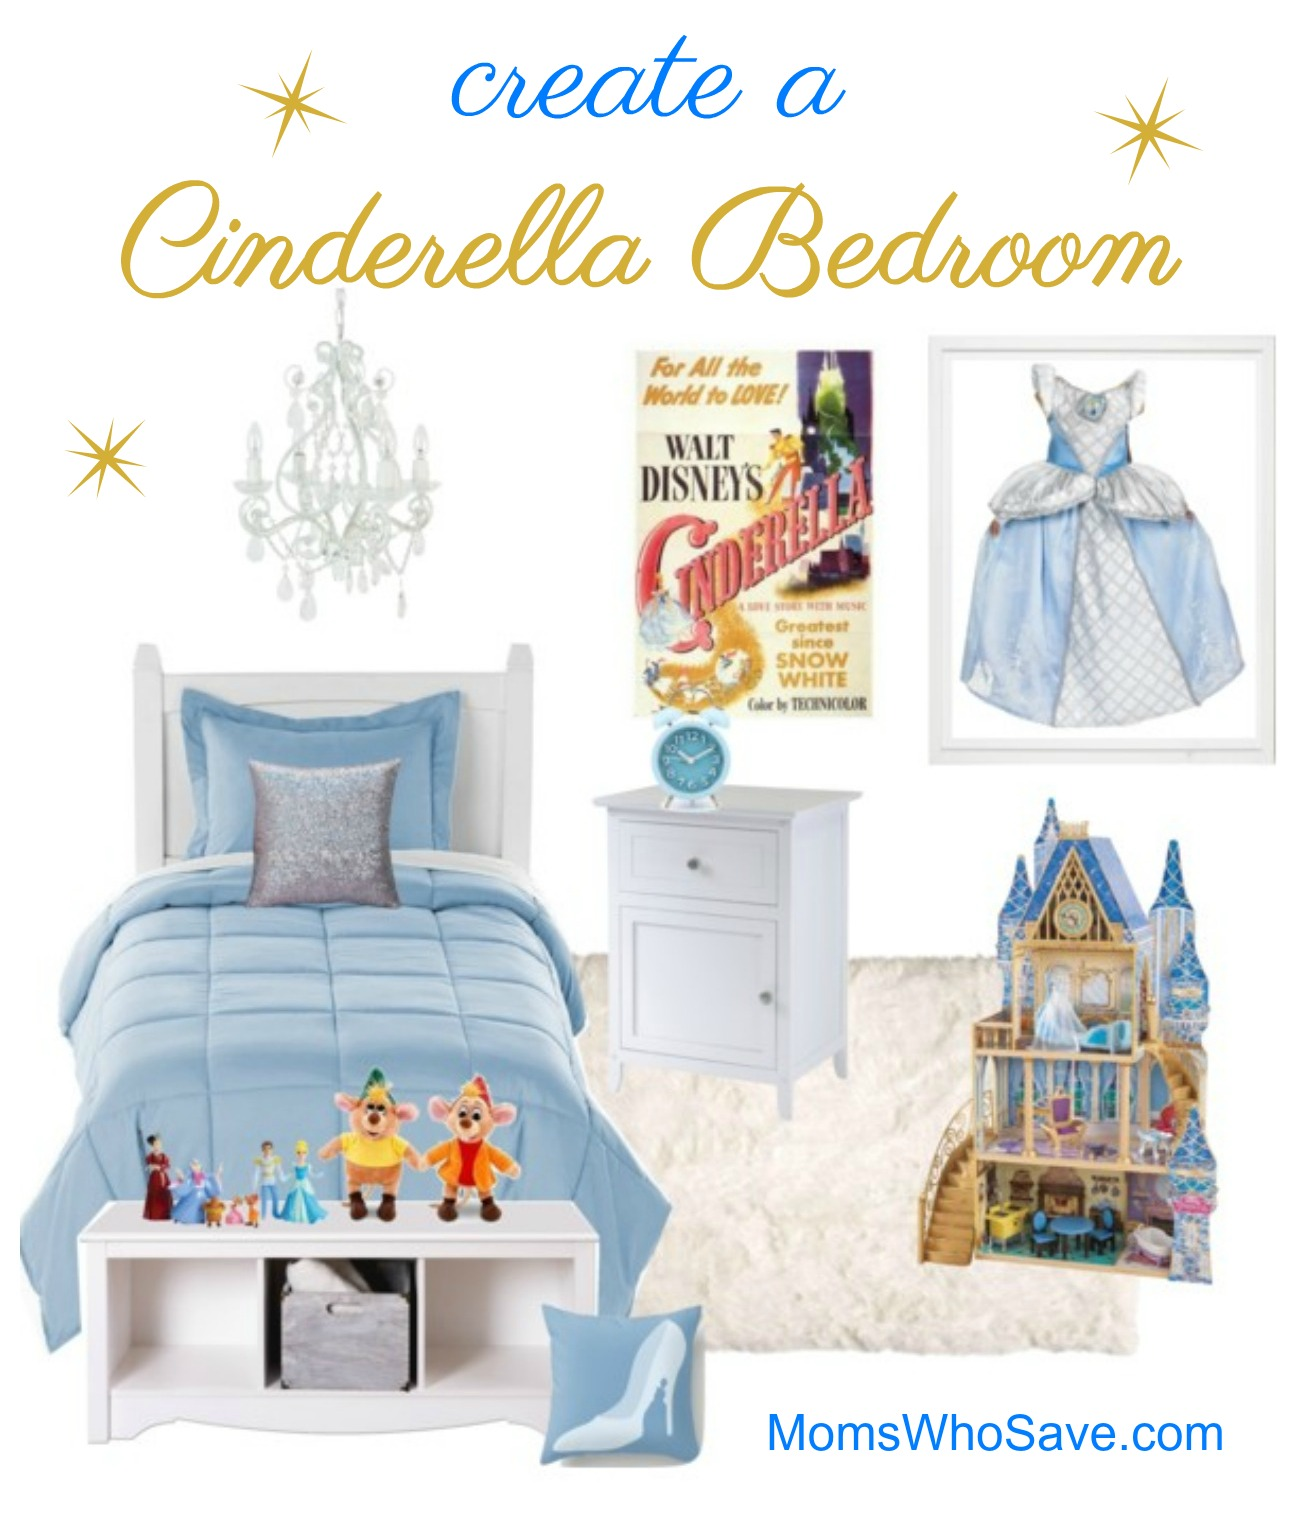 Create a Cinderella Bedroom